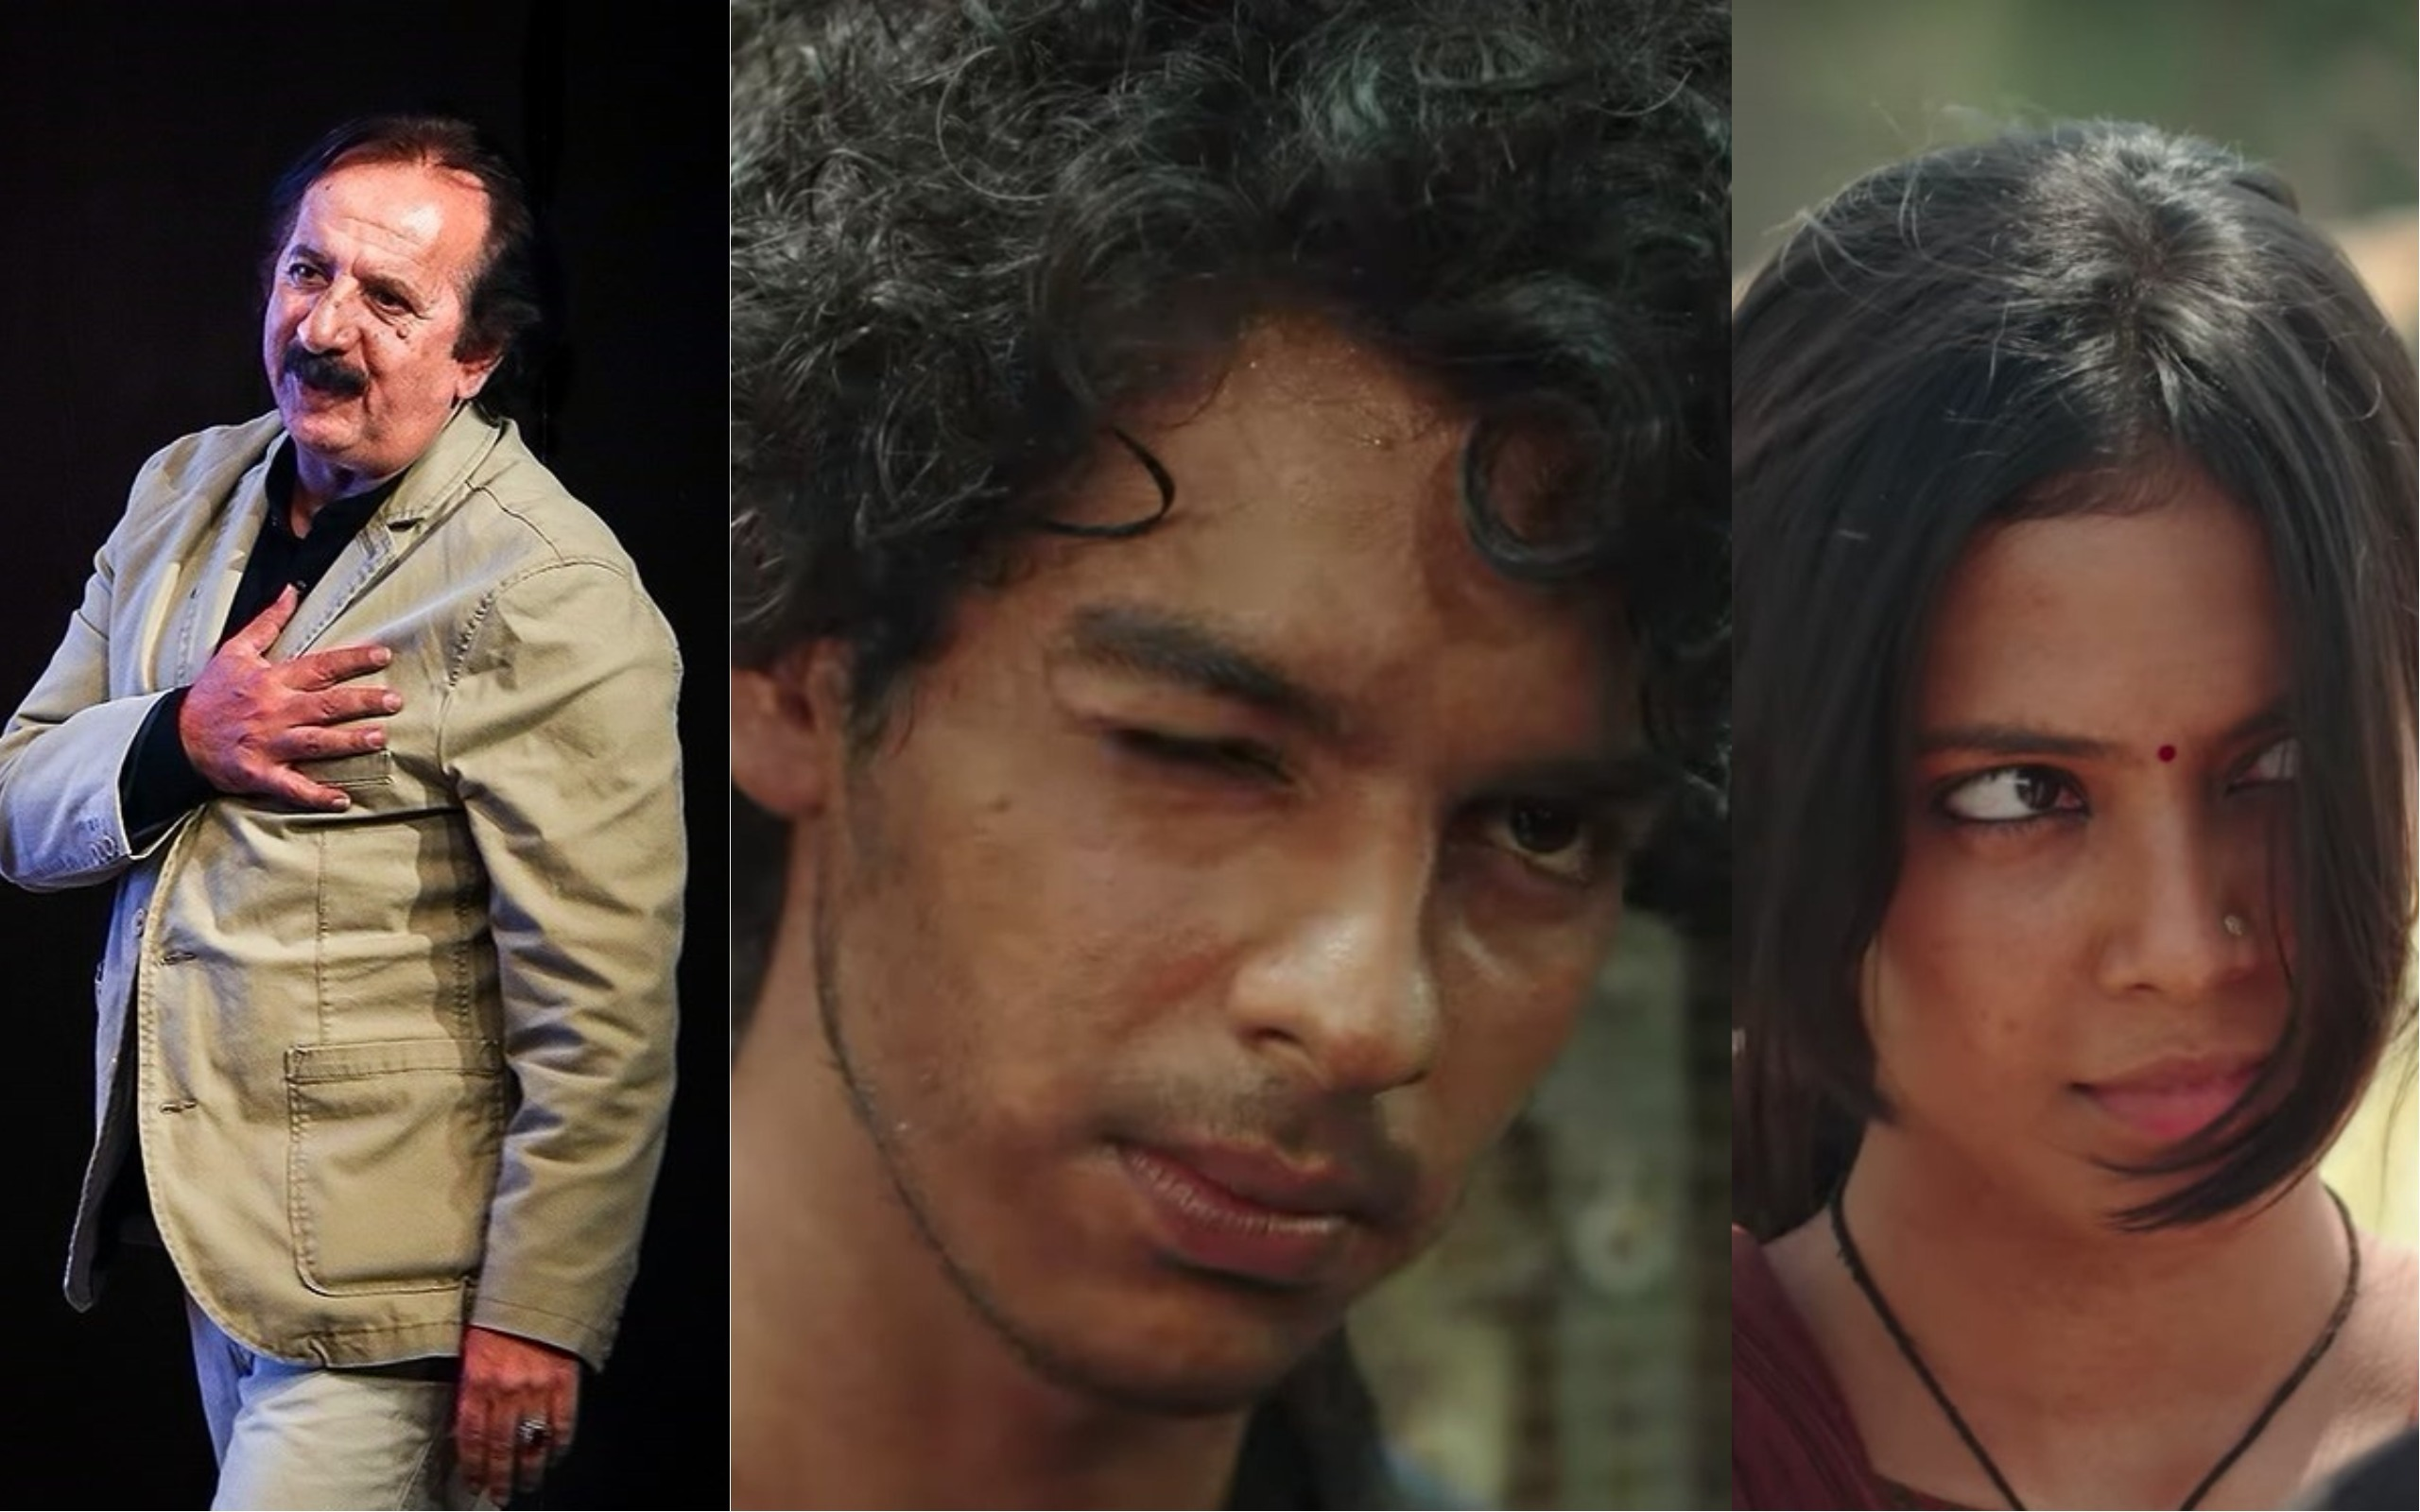 From left: Director Majid Majidi, Ishaan Khattar and Malavika Mohanan.